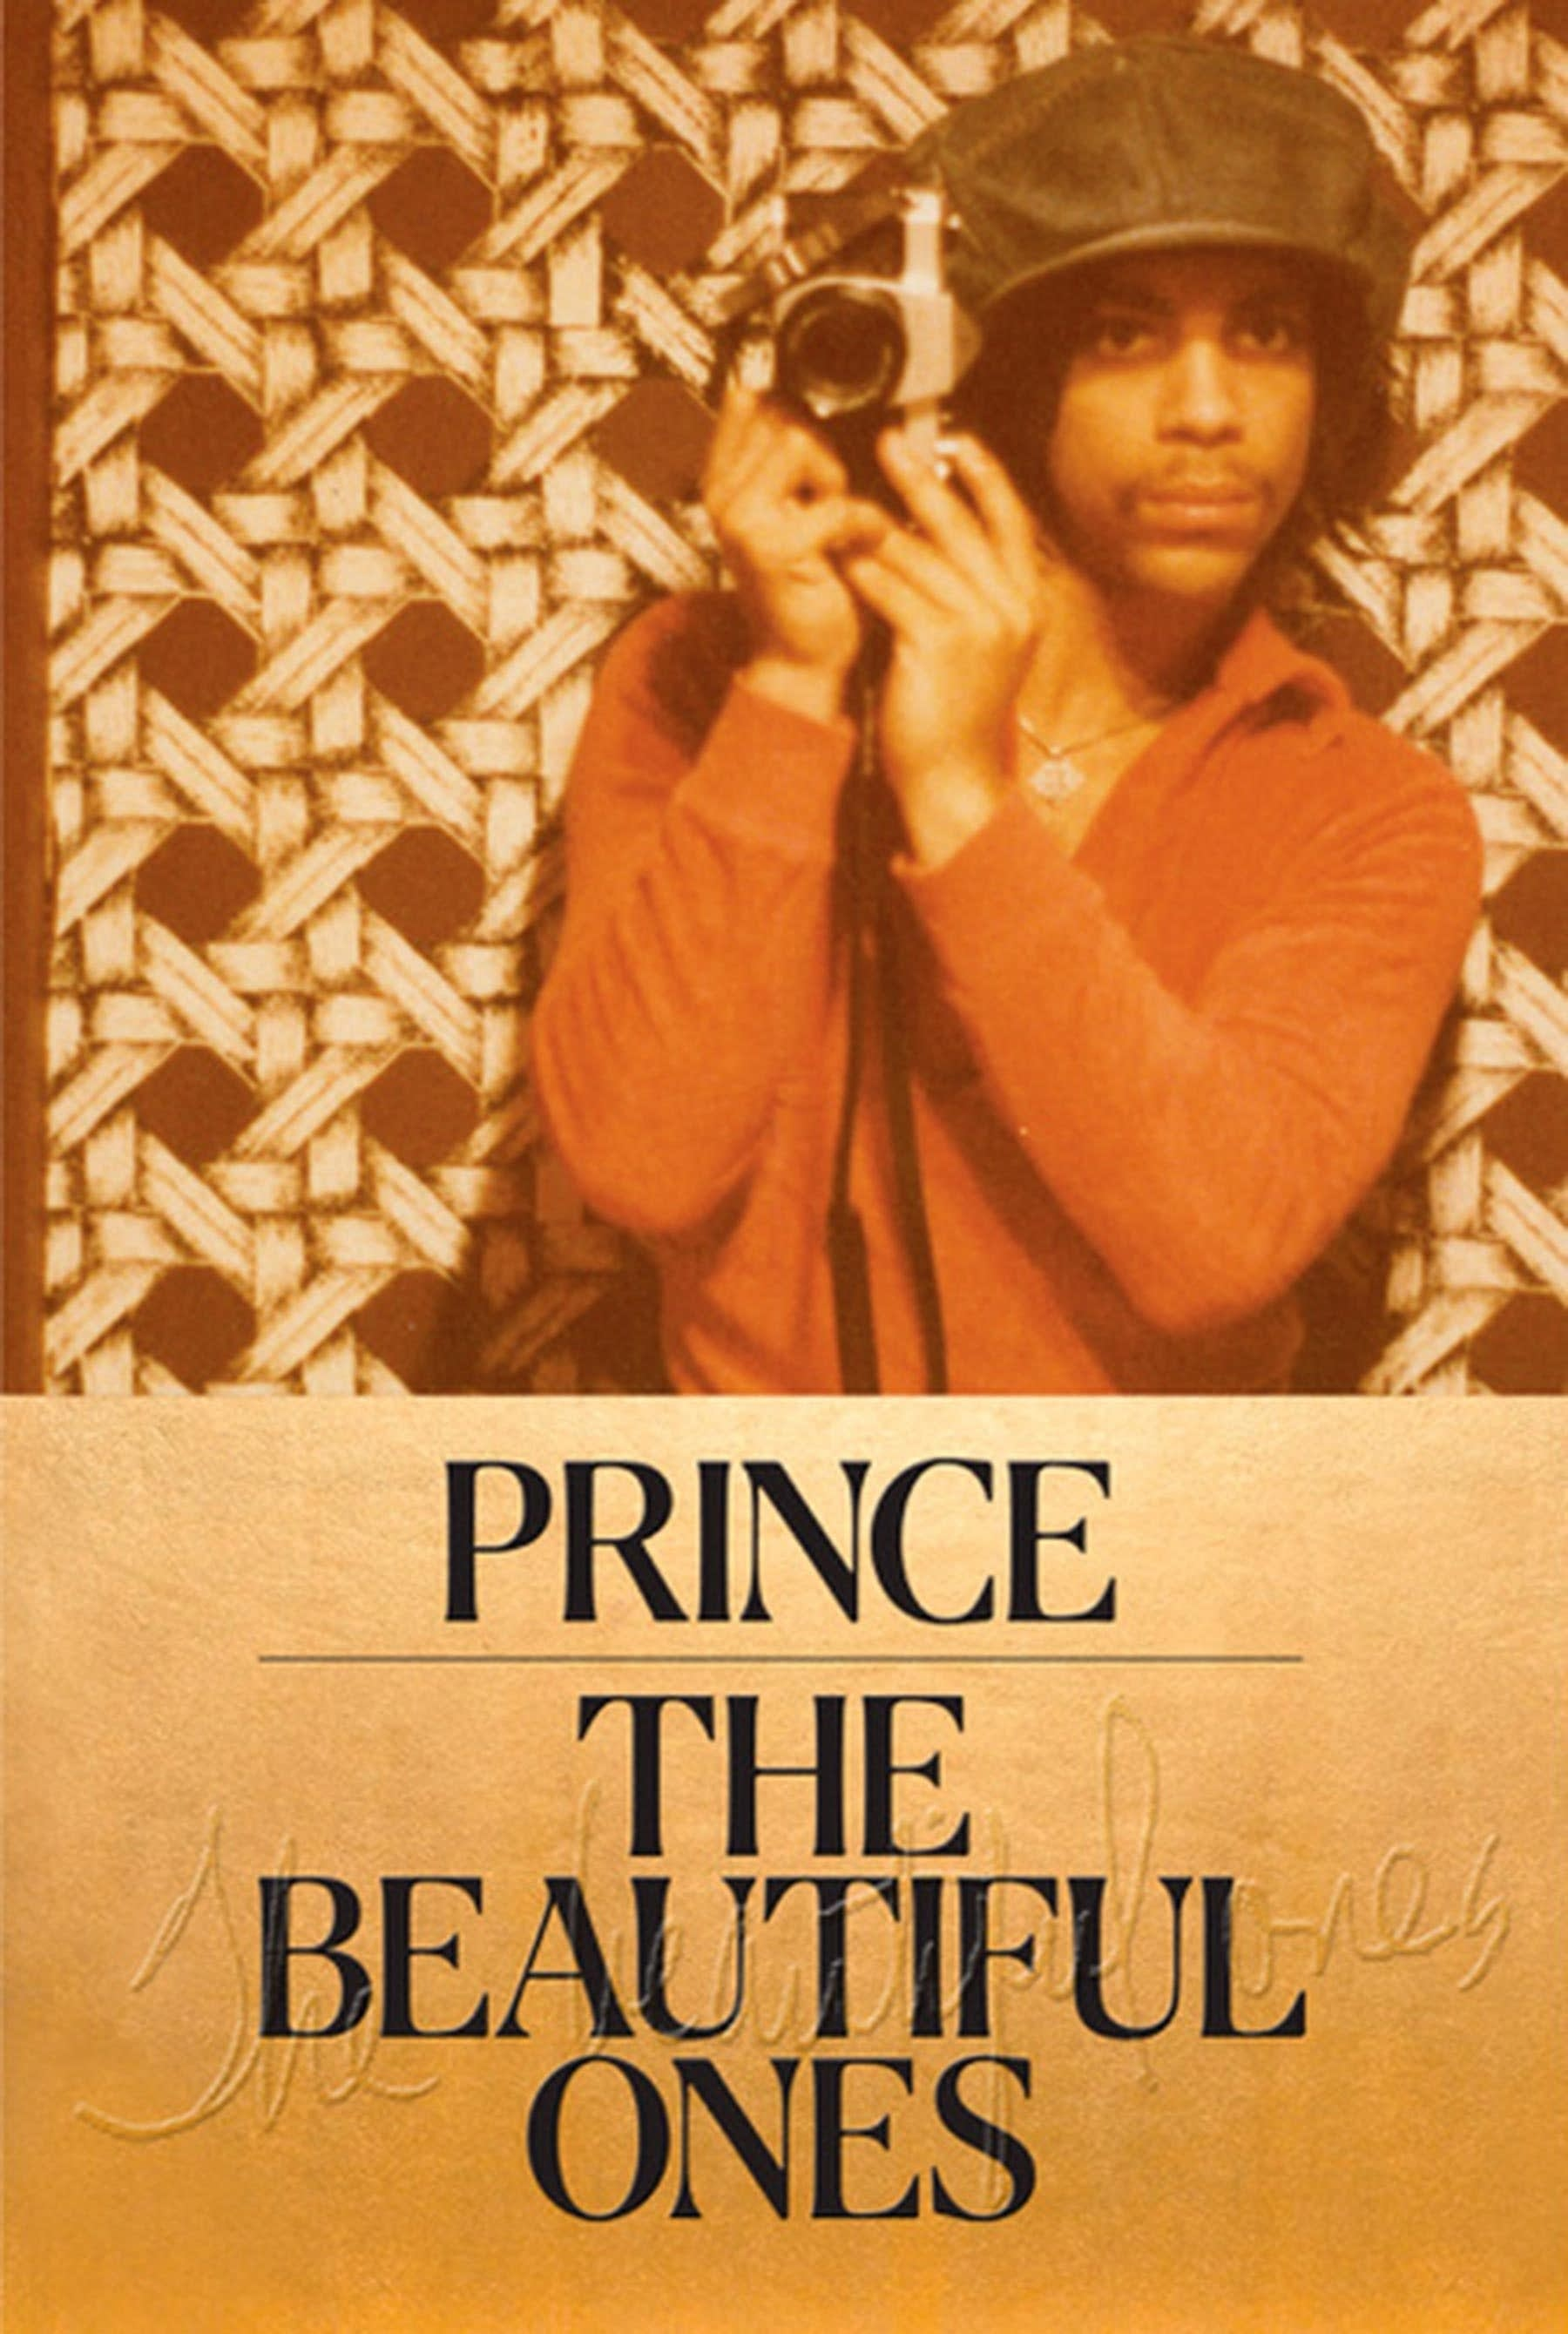 Prince's 'The Beautiful Ones' book cover art.